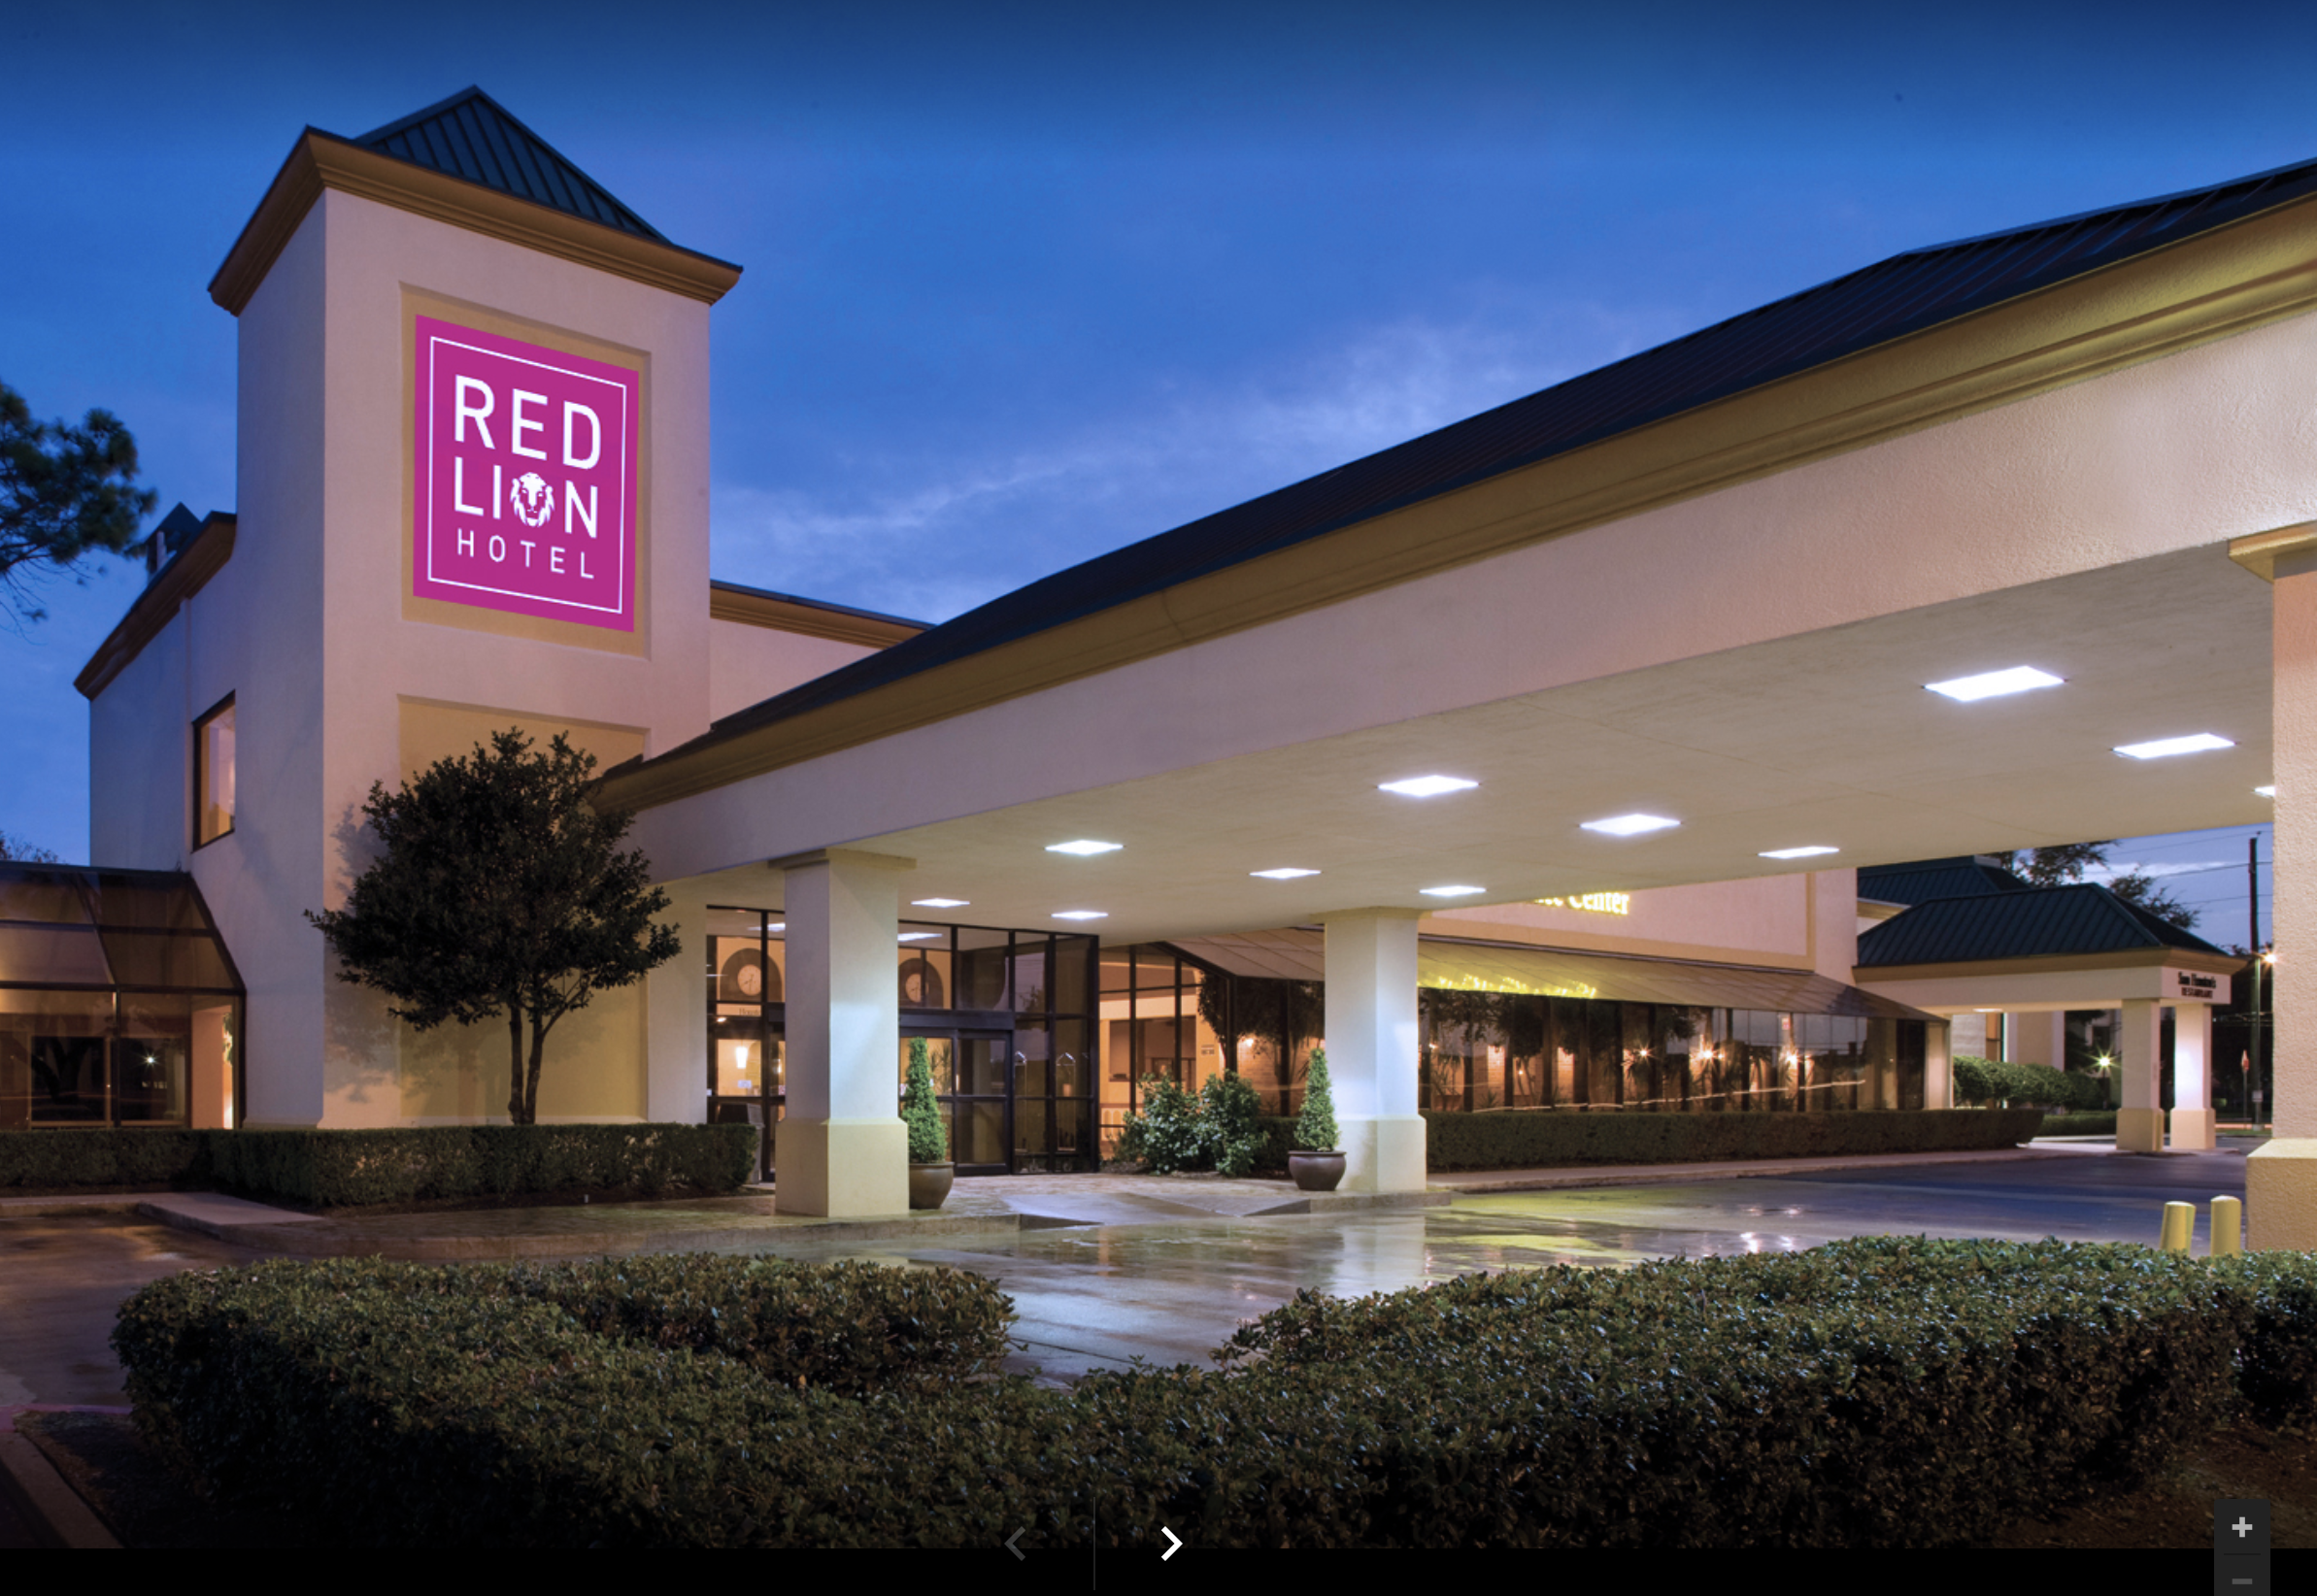 Houston, Texas Lodging: Book the Best Lodging - Gold USMLE